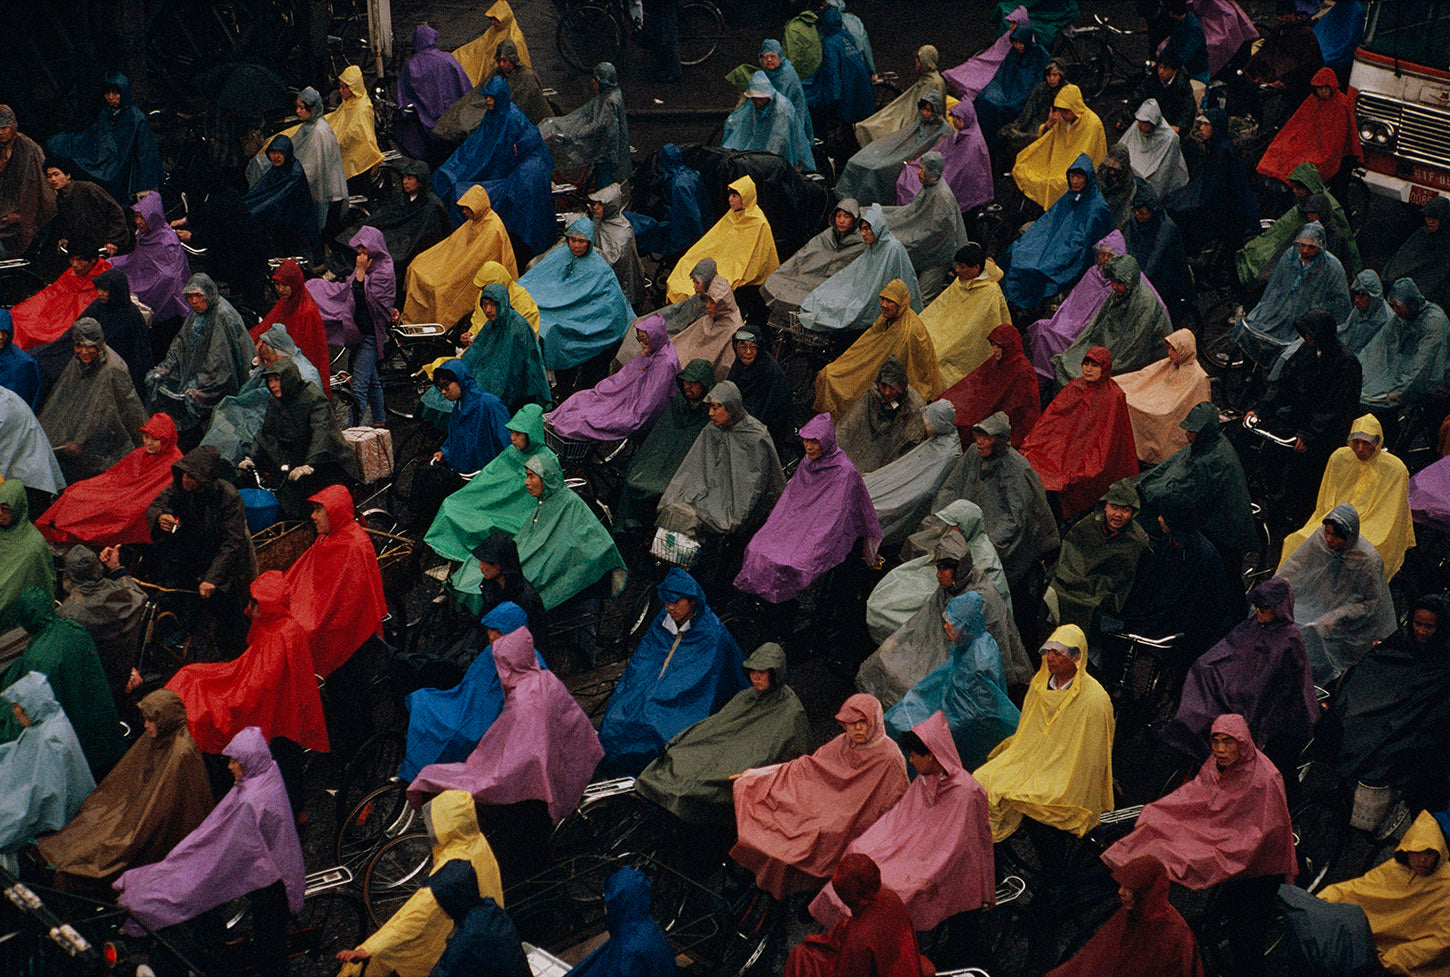 Cyclists in the rain. Shanghai, China. 1993